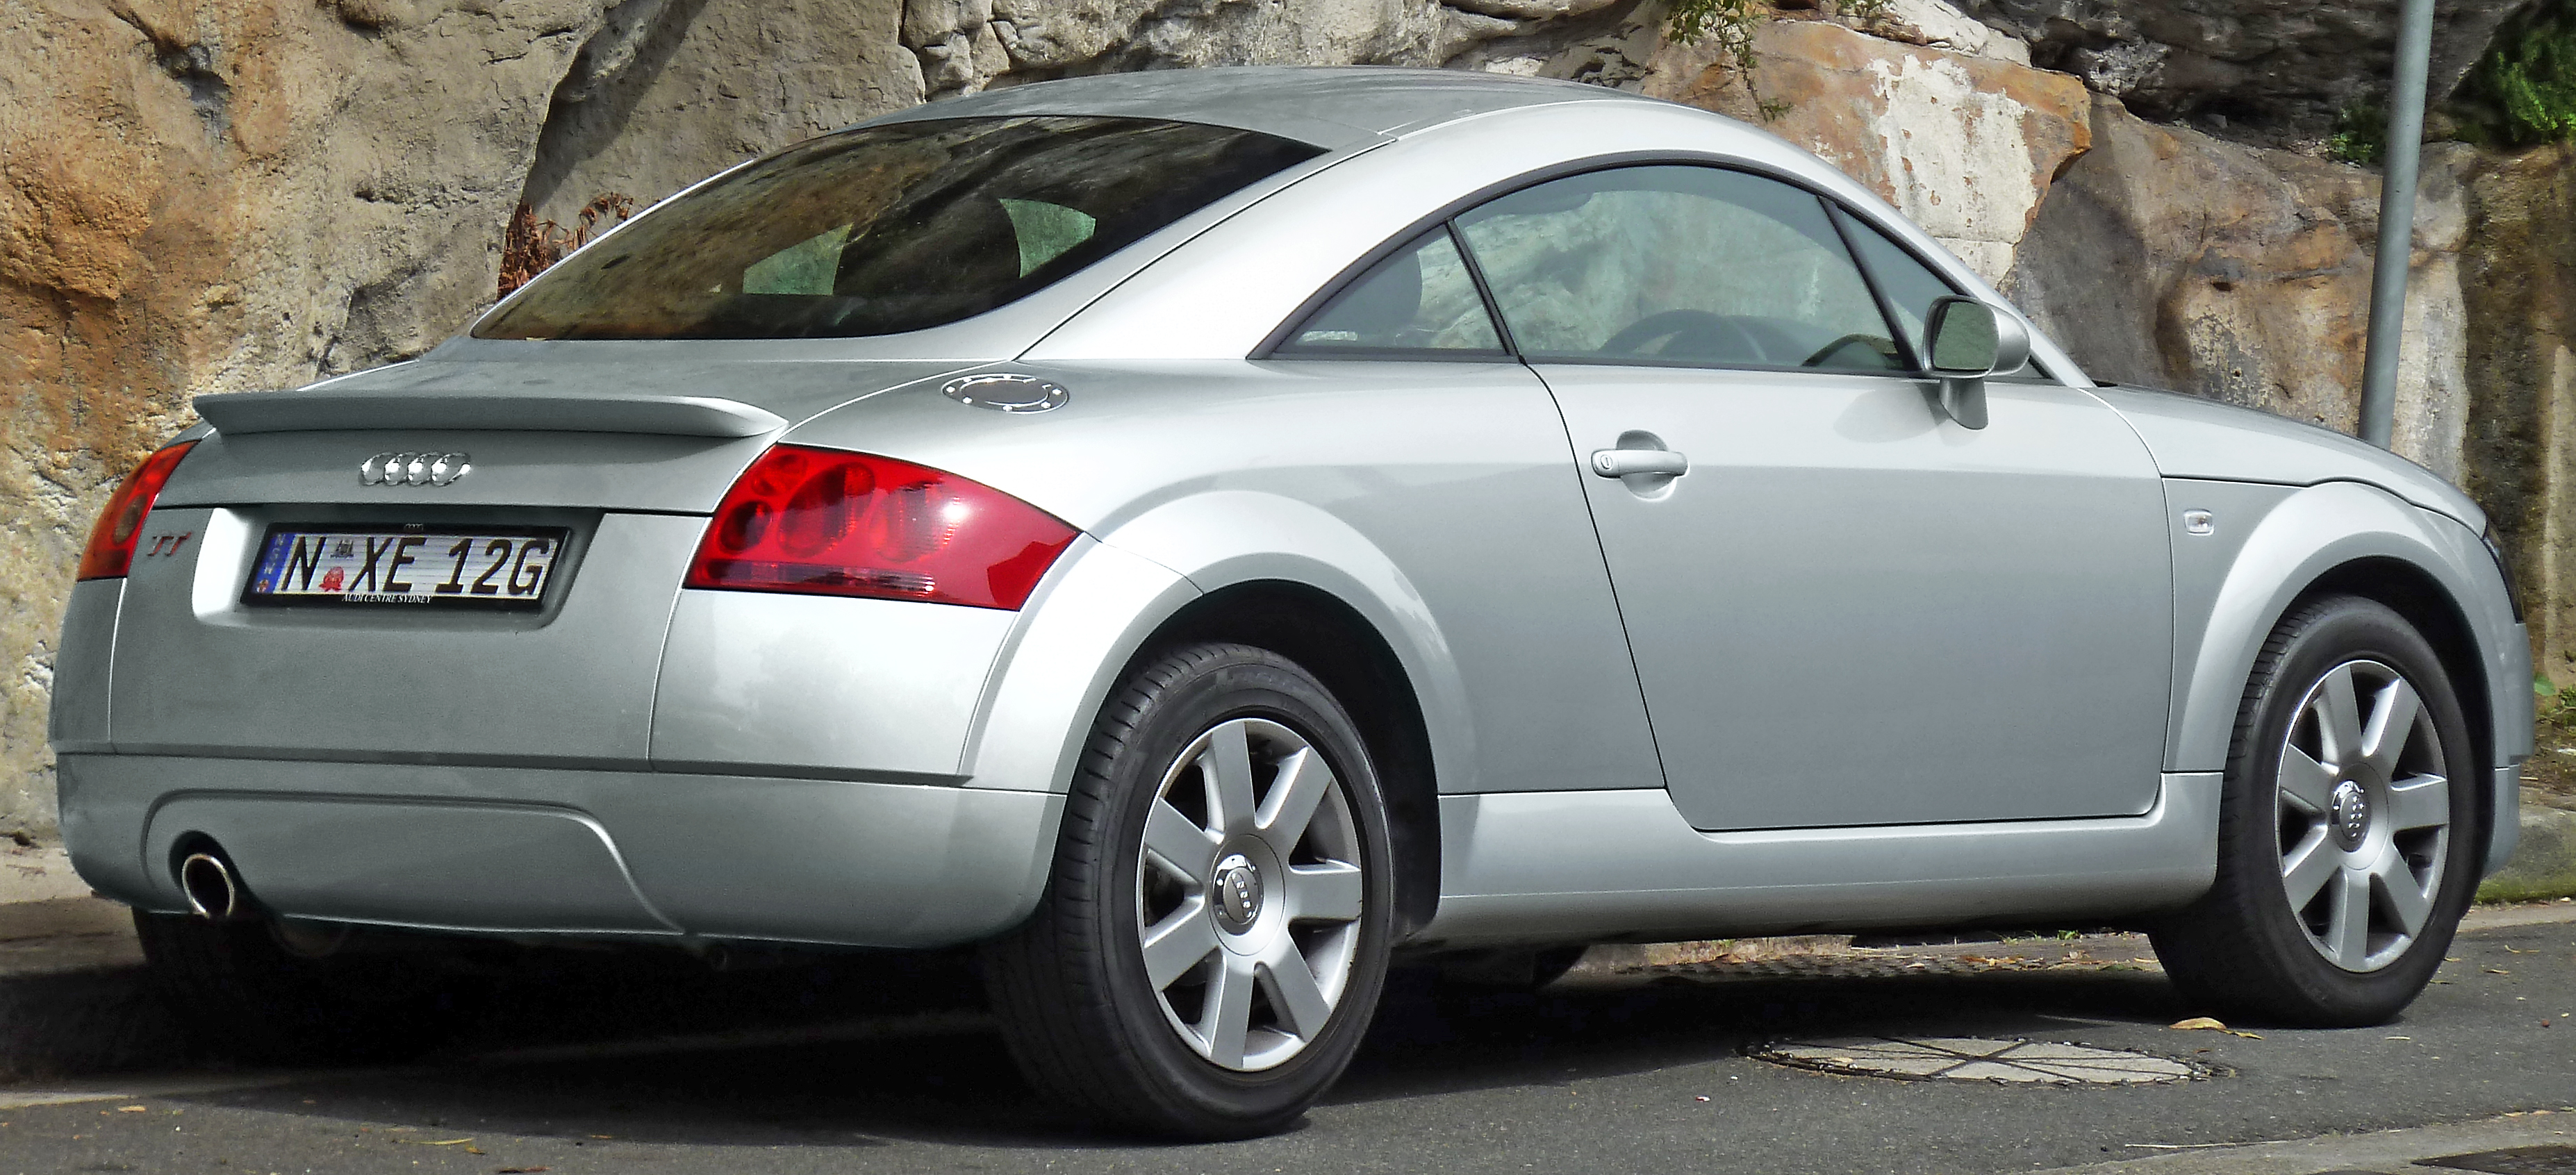 file 2003 2006 audi tt 8n 1 8 t coupe 2011 11 08 wikimedia commons. Black Bedroom Furniture Sets. Home Design Ideas